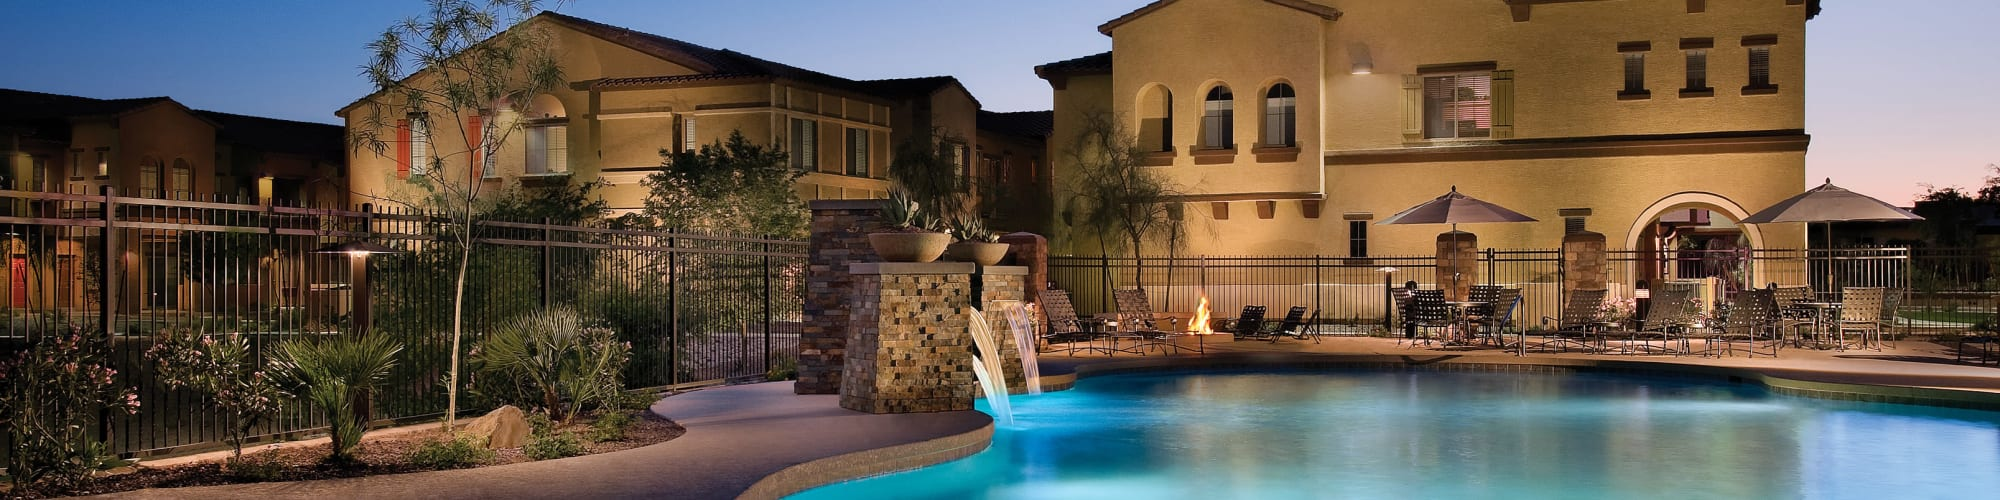 Photos of Ravenwood Heights in Tempe, Arizona